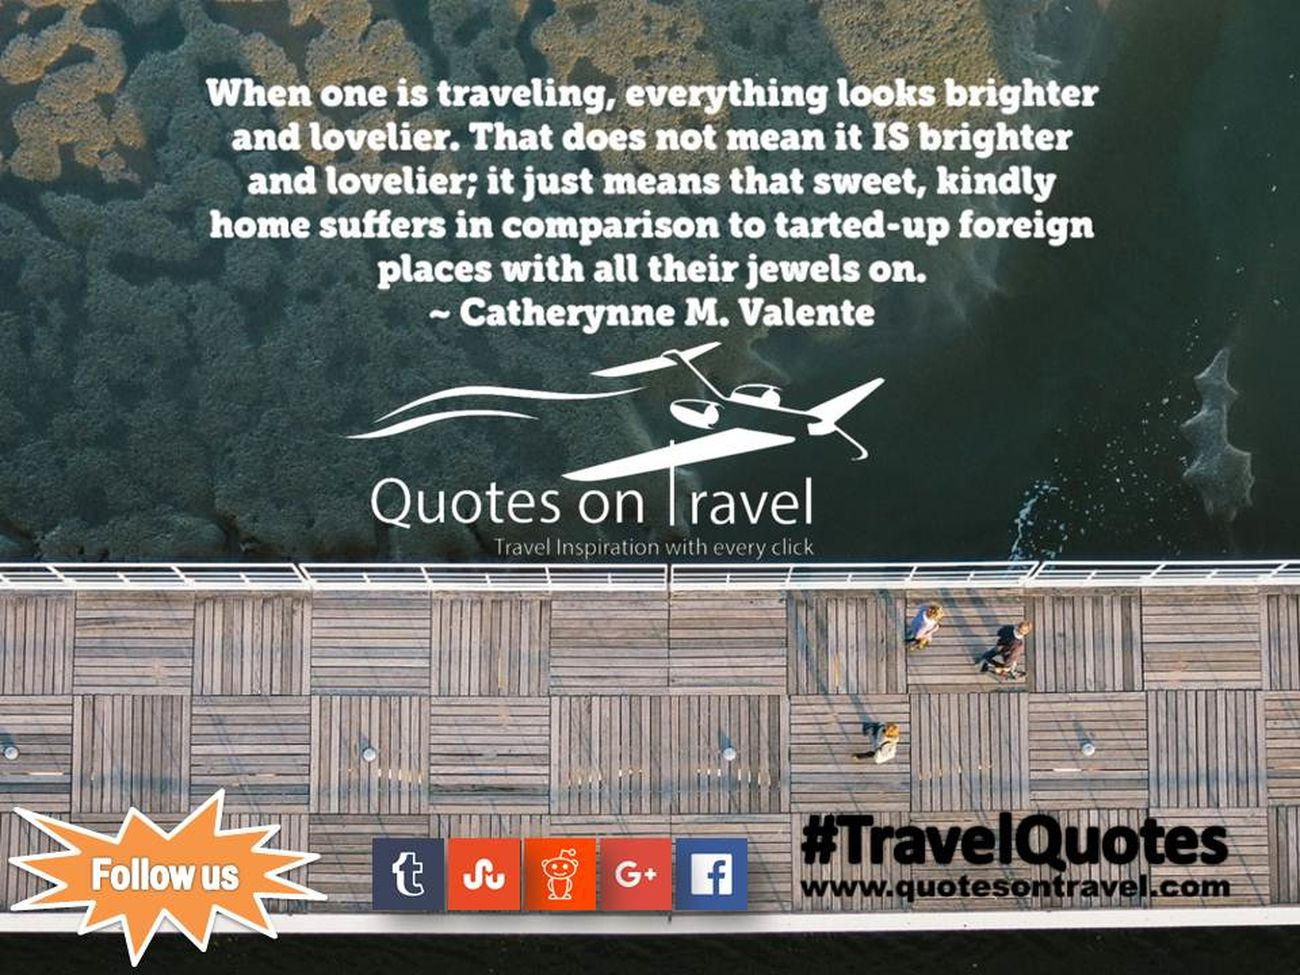 Funny Travel Quotes Funny Travel Quotes And Sayings Quotes On Travel Travel Quotes Travel Quotes And Sayings